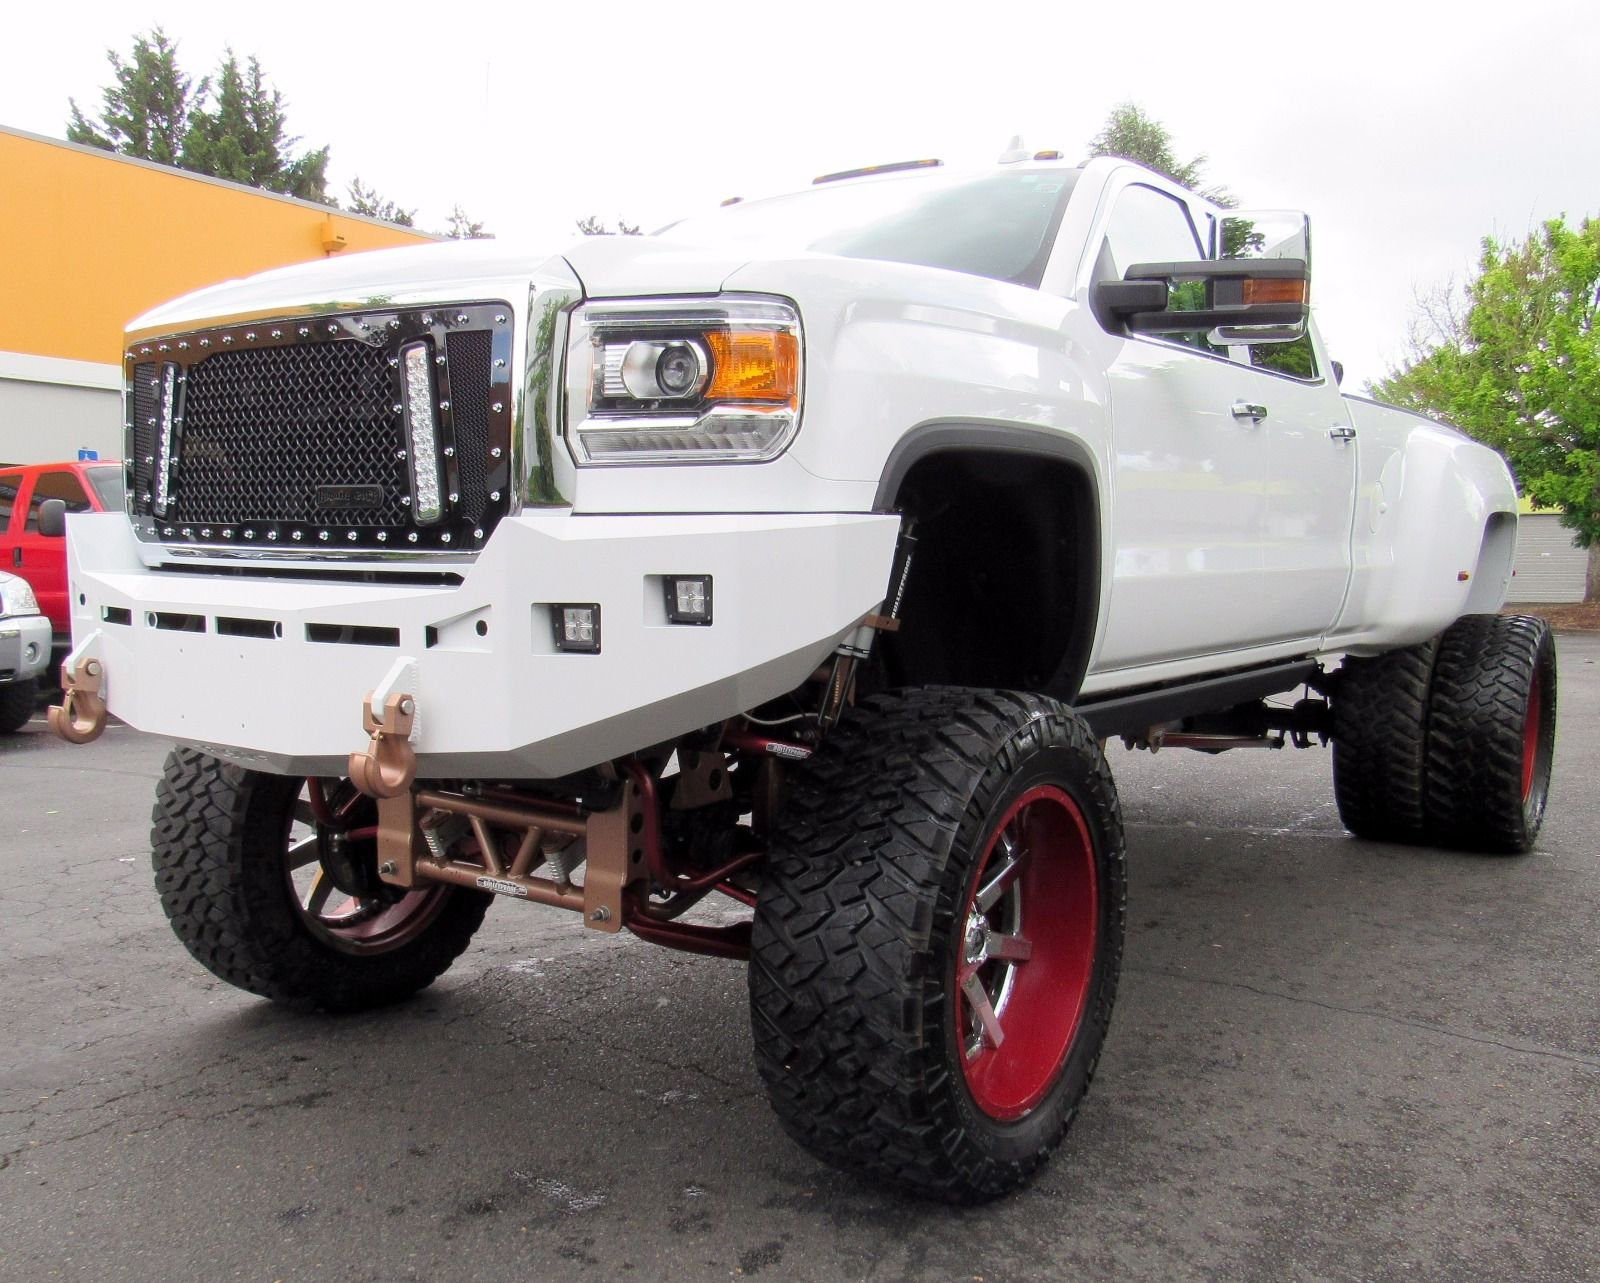 2015 gmc sierra 3500 denali monster truck for sale. Black Bedroom Furniture Sets. Home Design Ideas